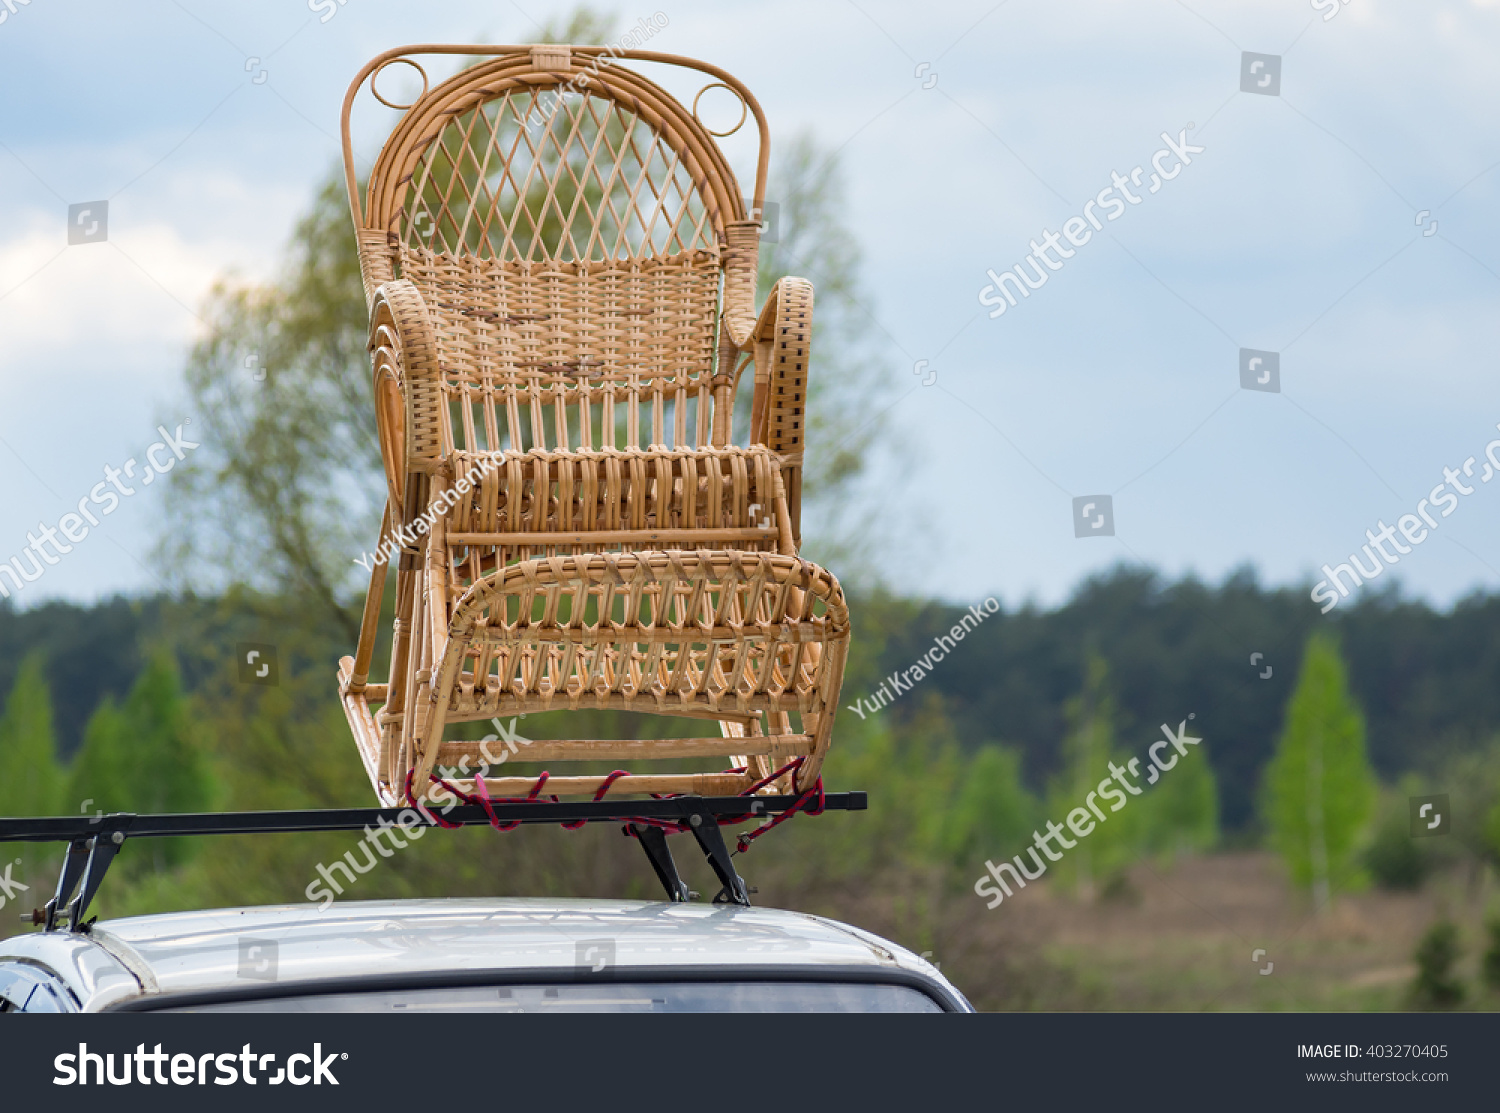 car passenger transportation image wicker a rocking for shutterstock rockingchair photo on chair stock of roof